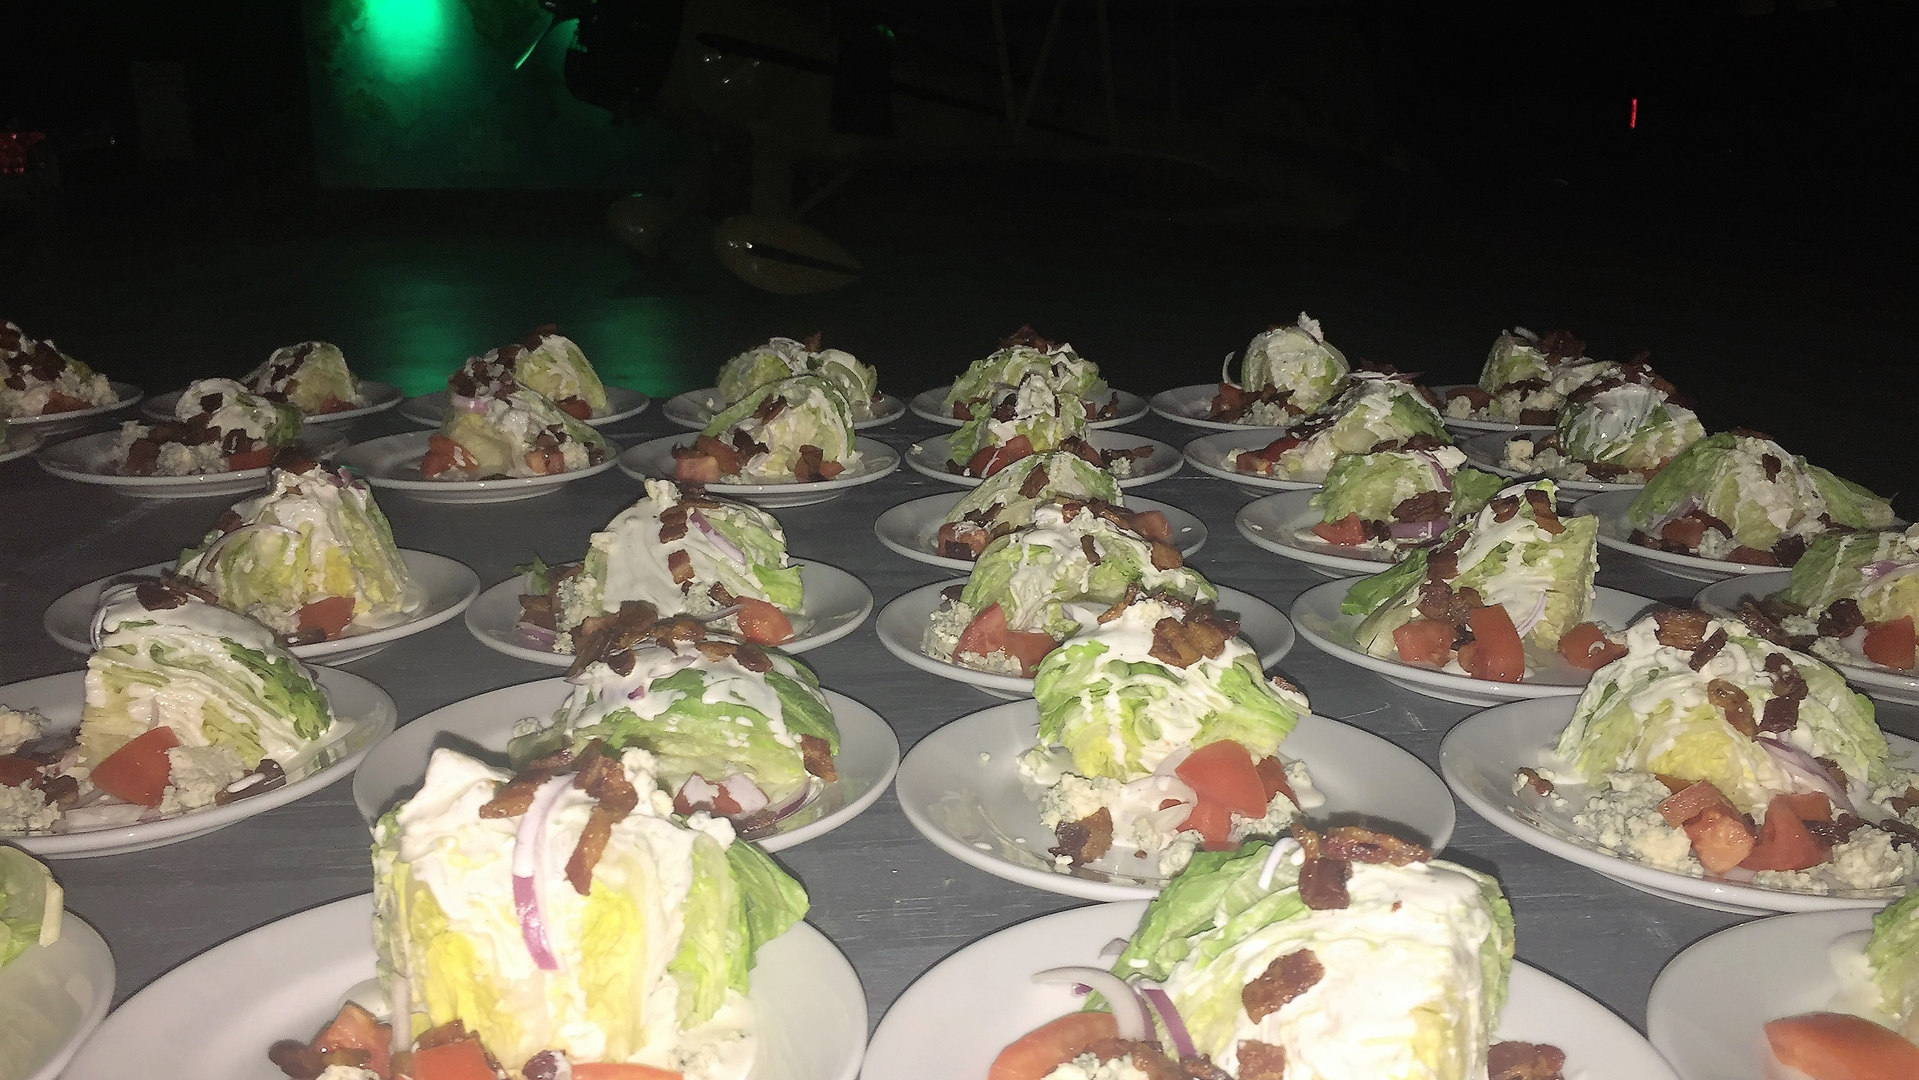 Plated Wedge Salad